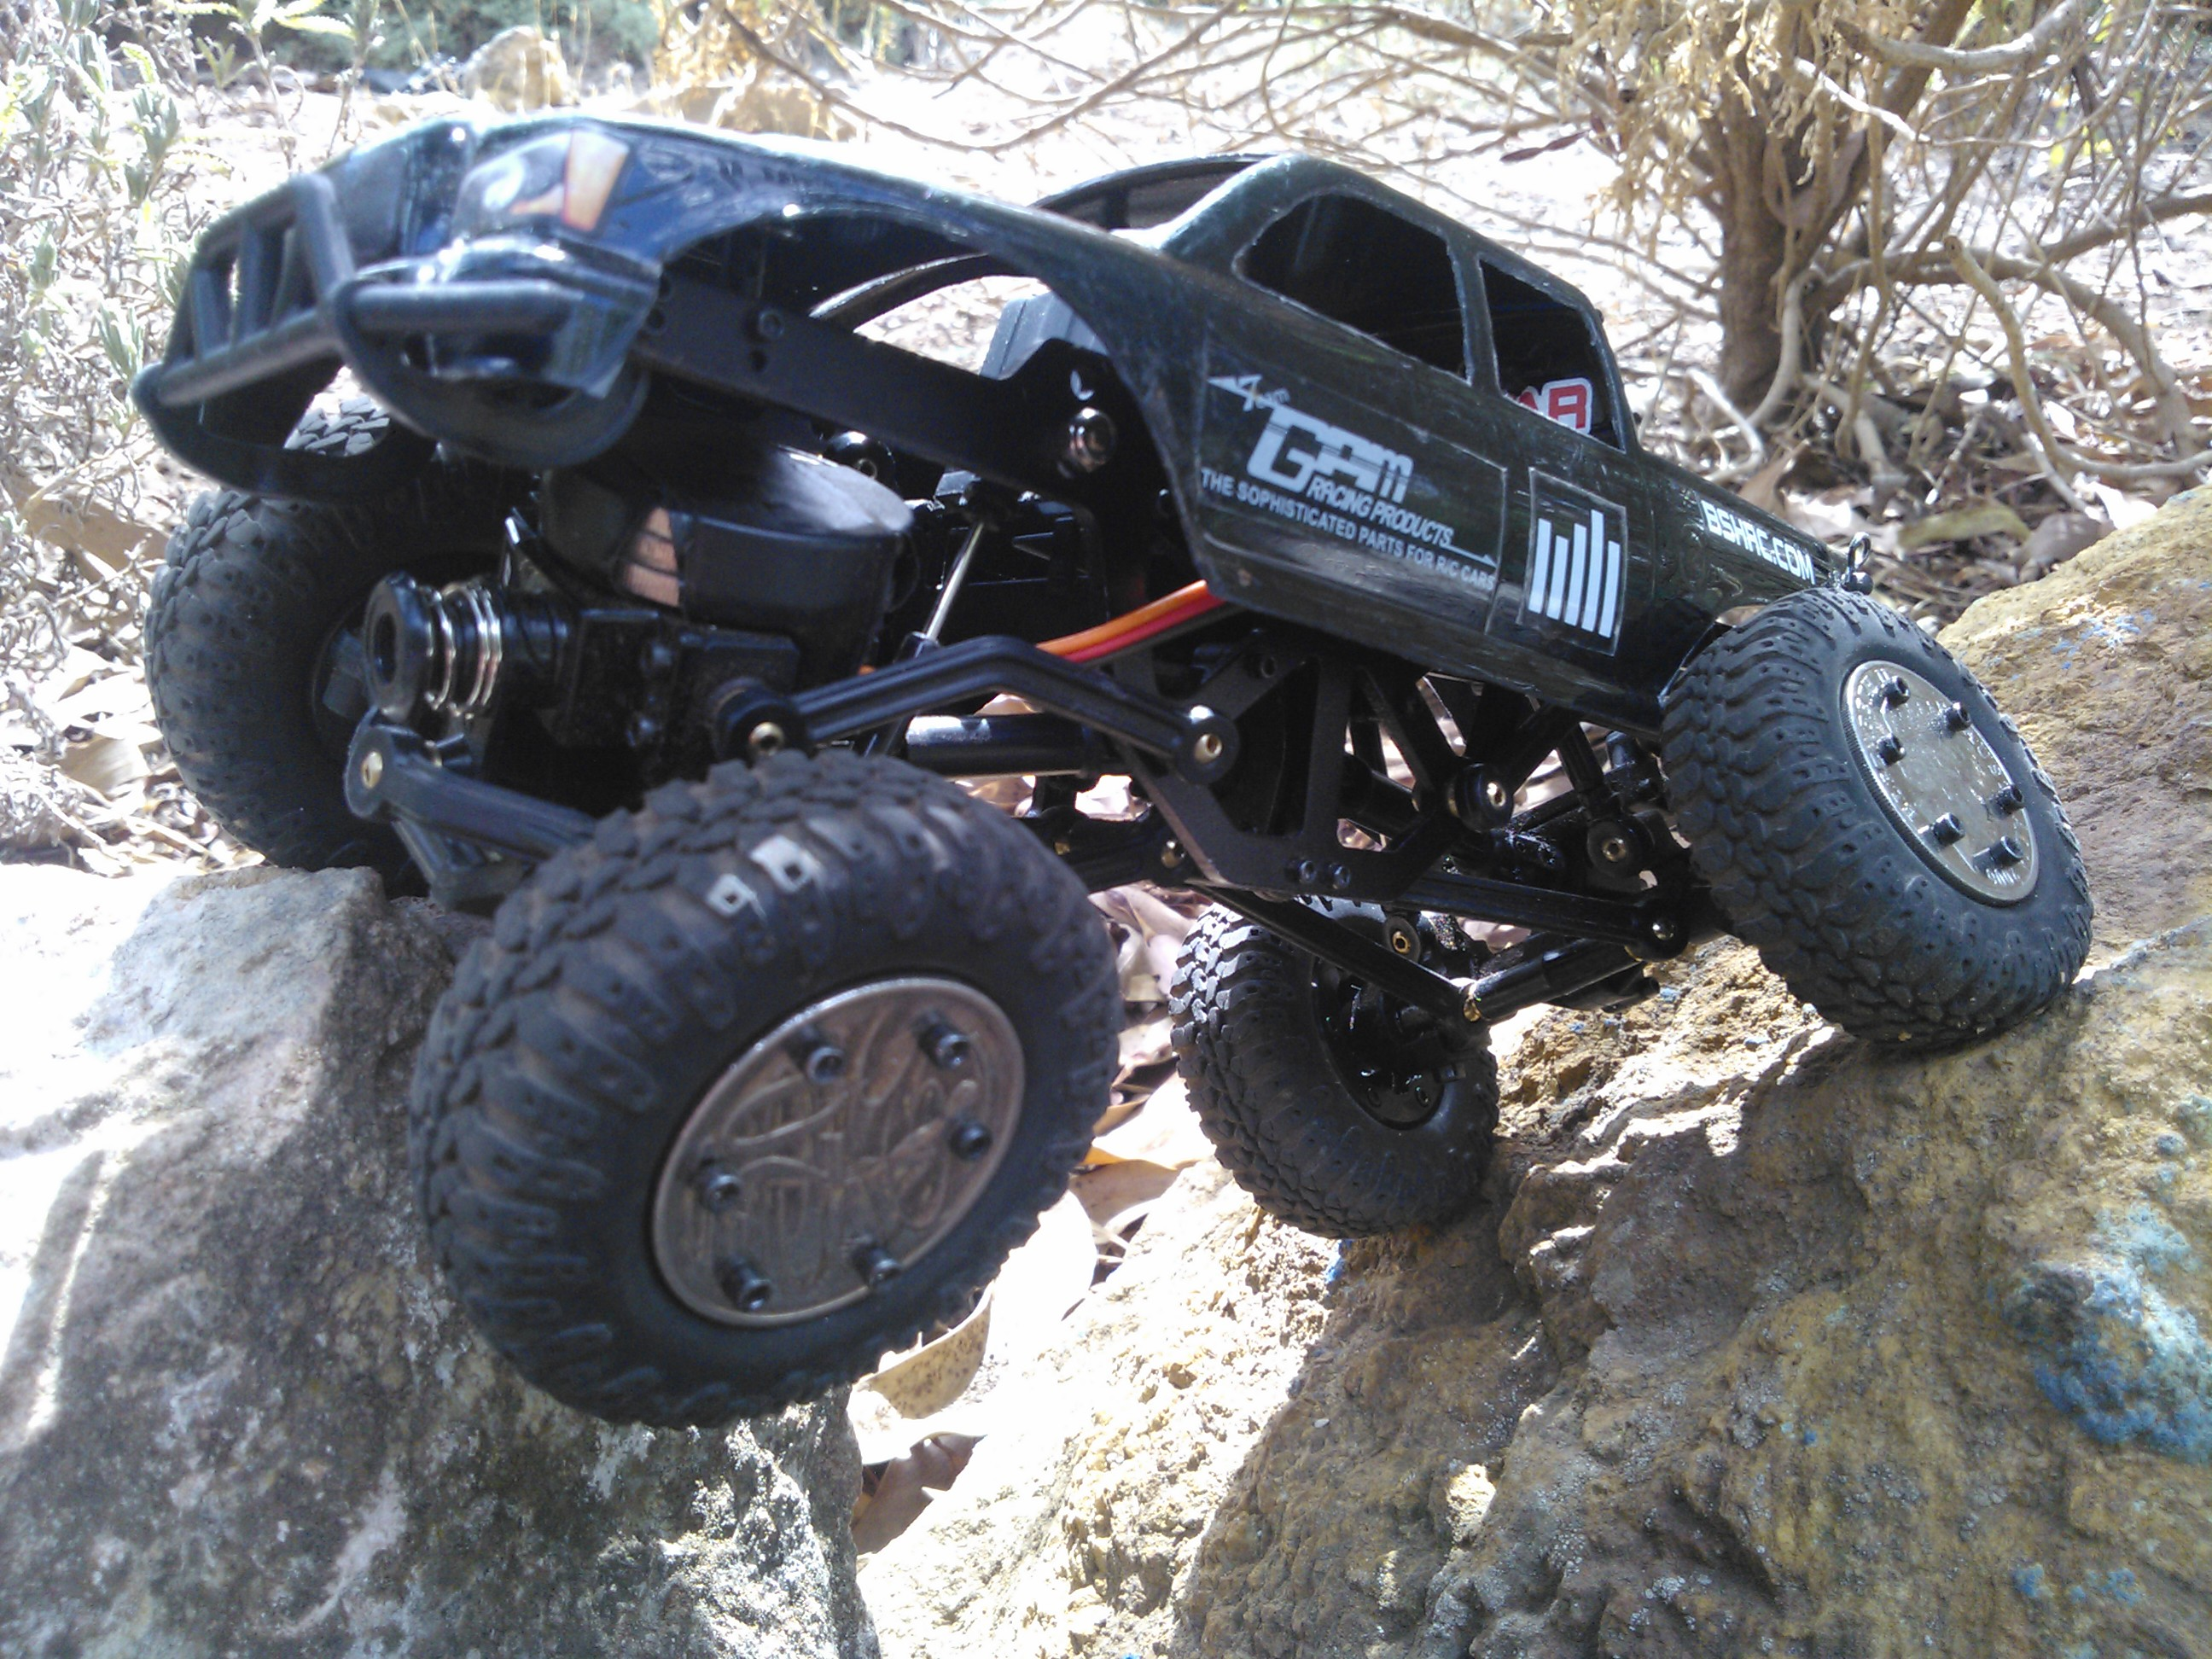 My LOSI Trail Trekker 1 24 Rock Crawler